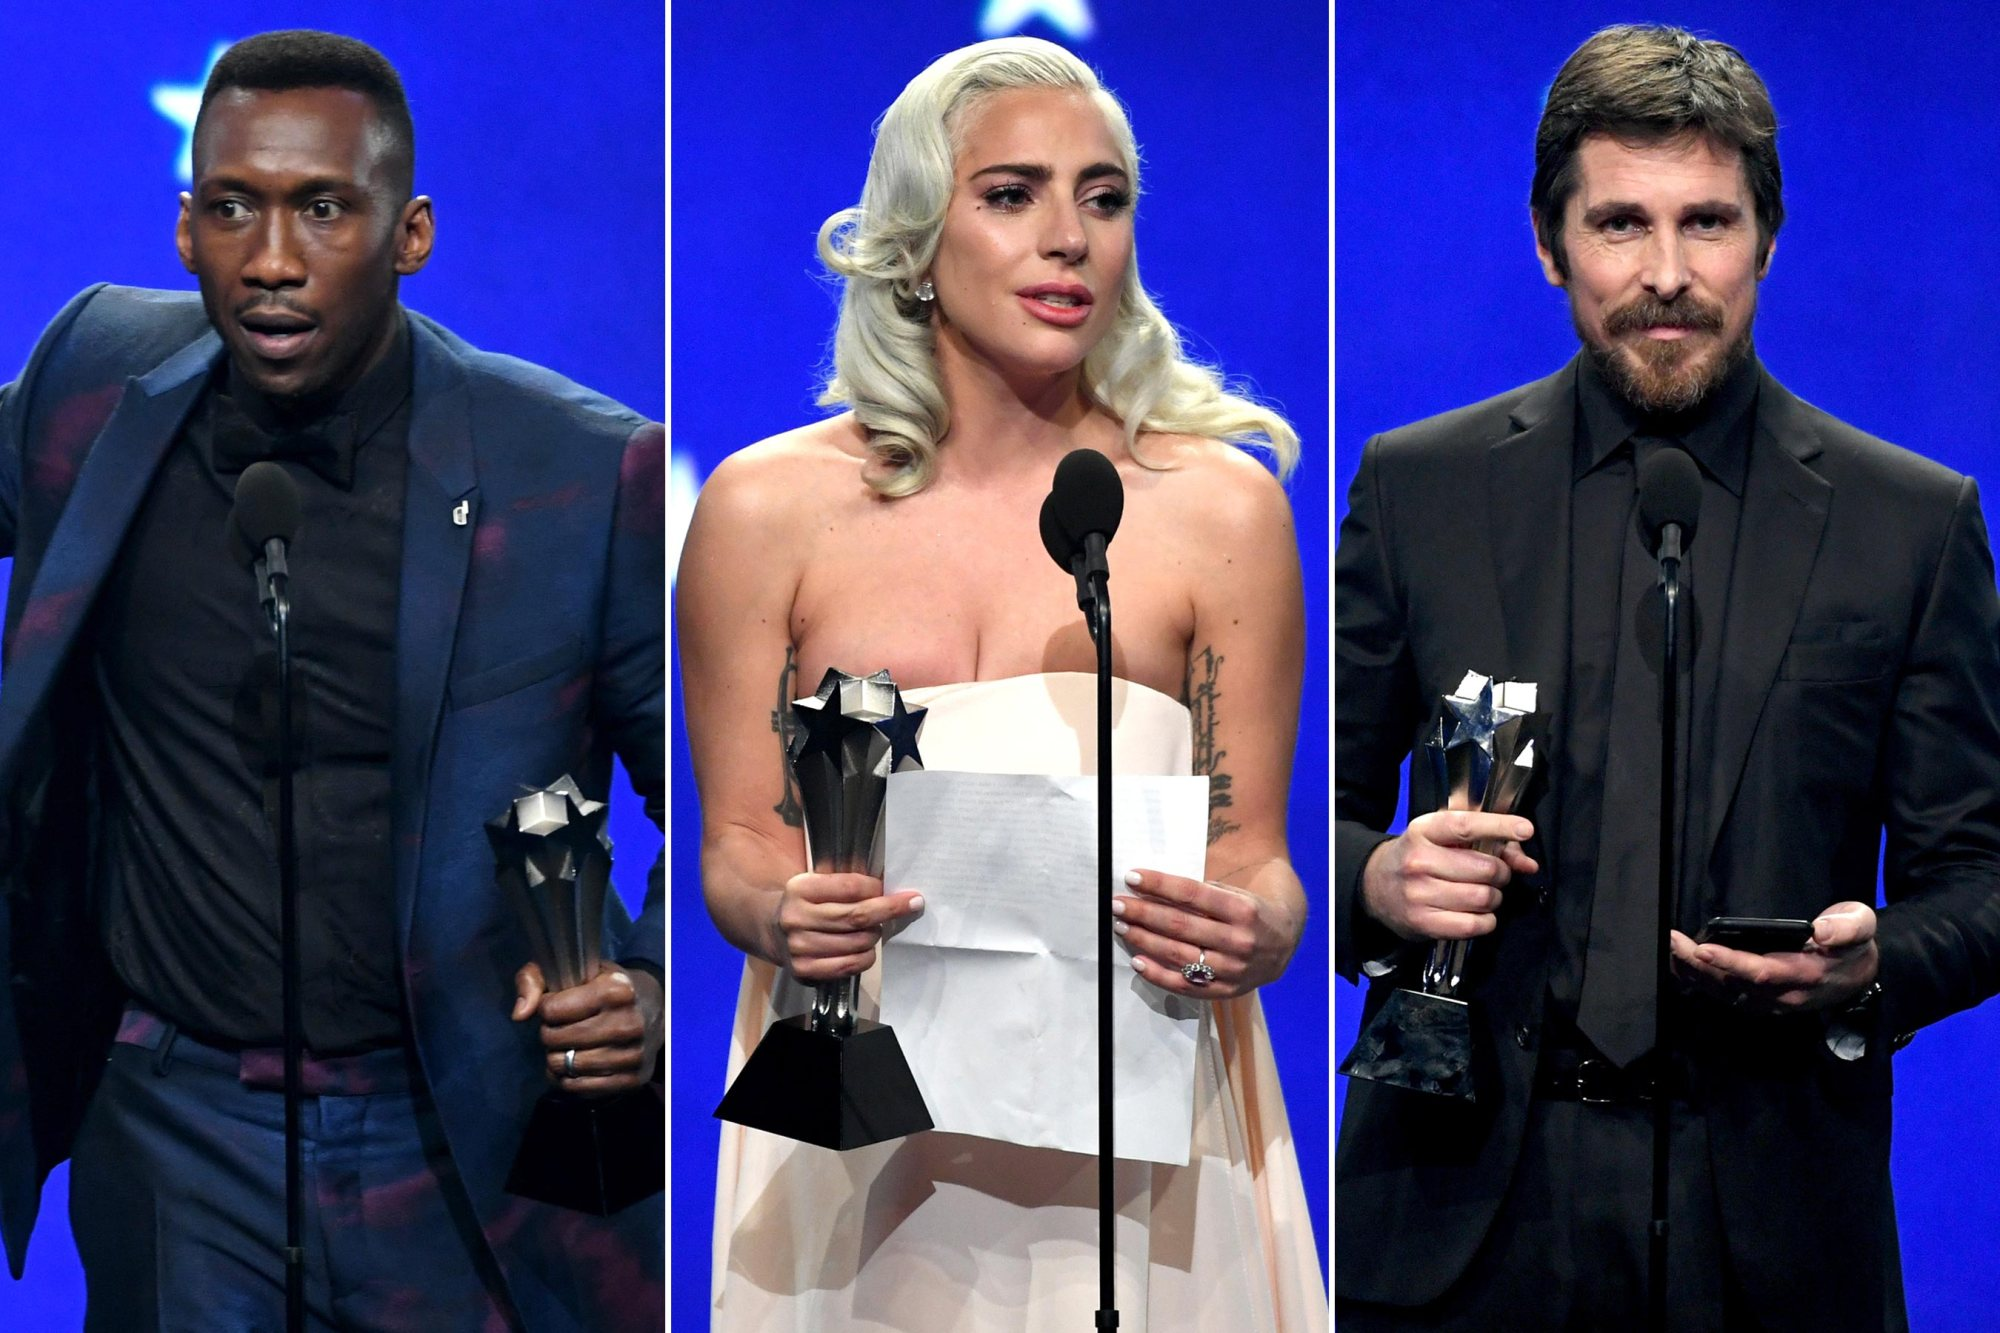 Oscar hopefuls Mahershala Ali, Lady Gaga and Christian Bale all won tonight at the Critics Choice awards